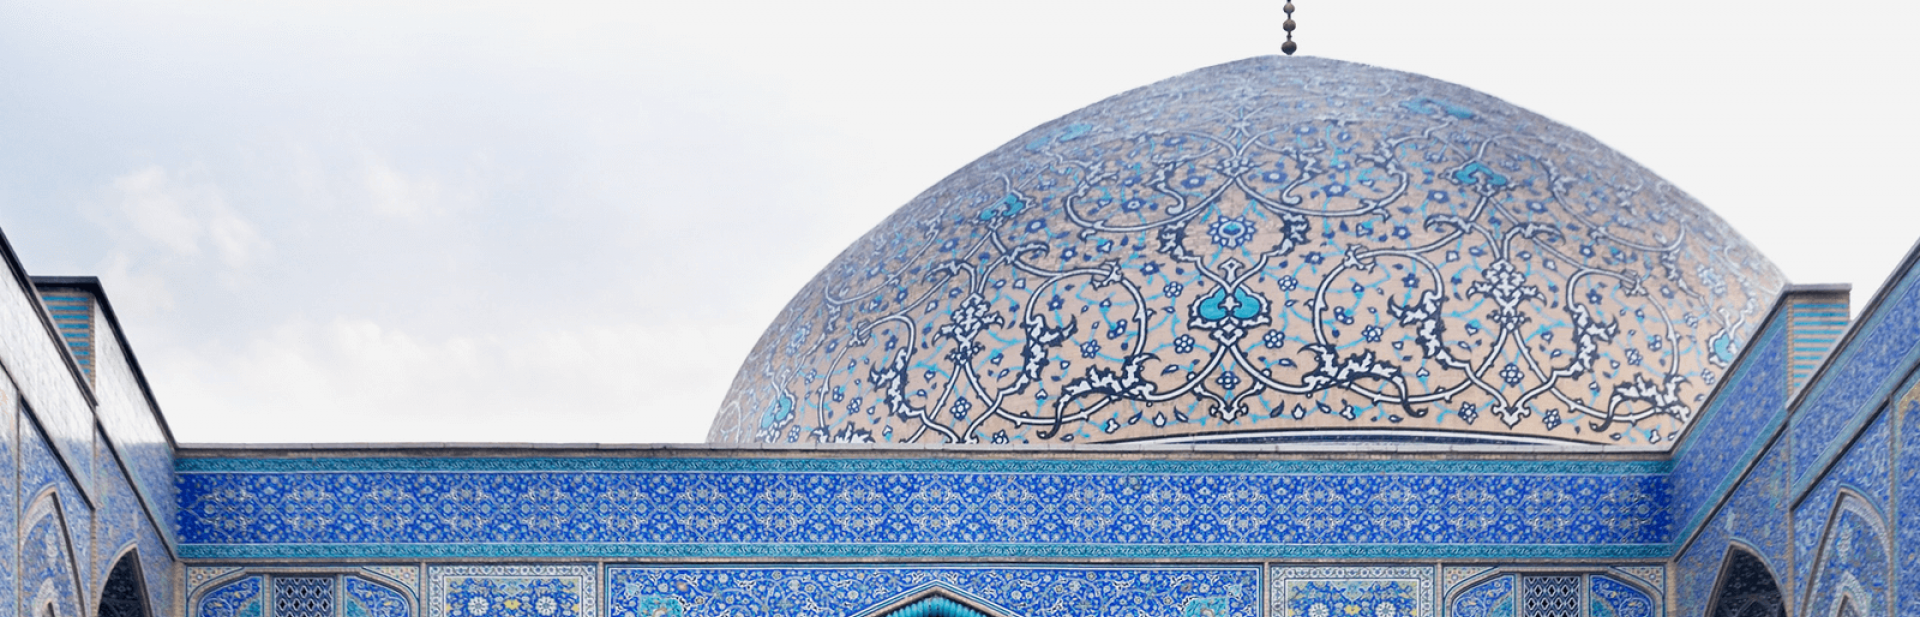 Blue Dome of a Mosque in Iran.